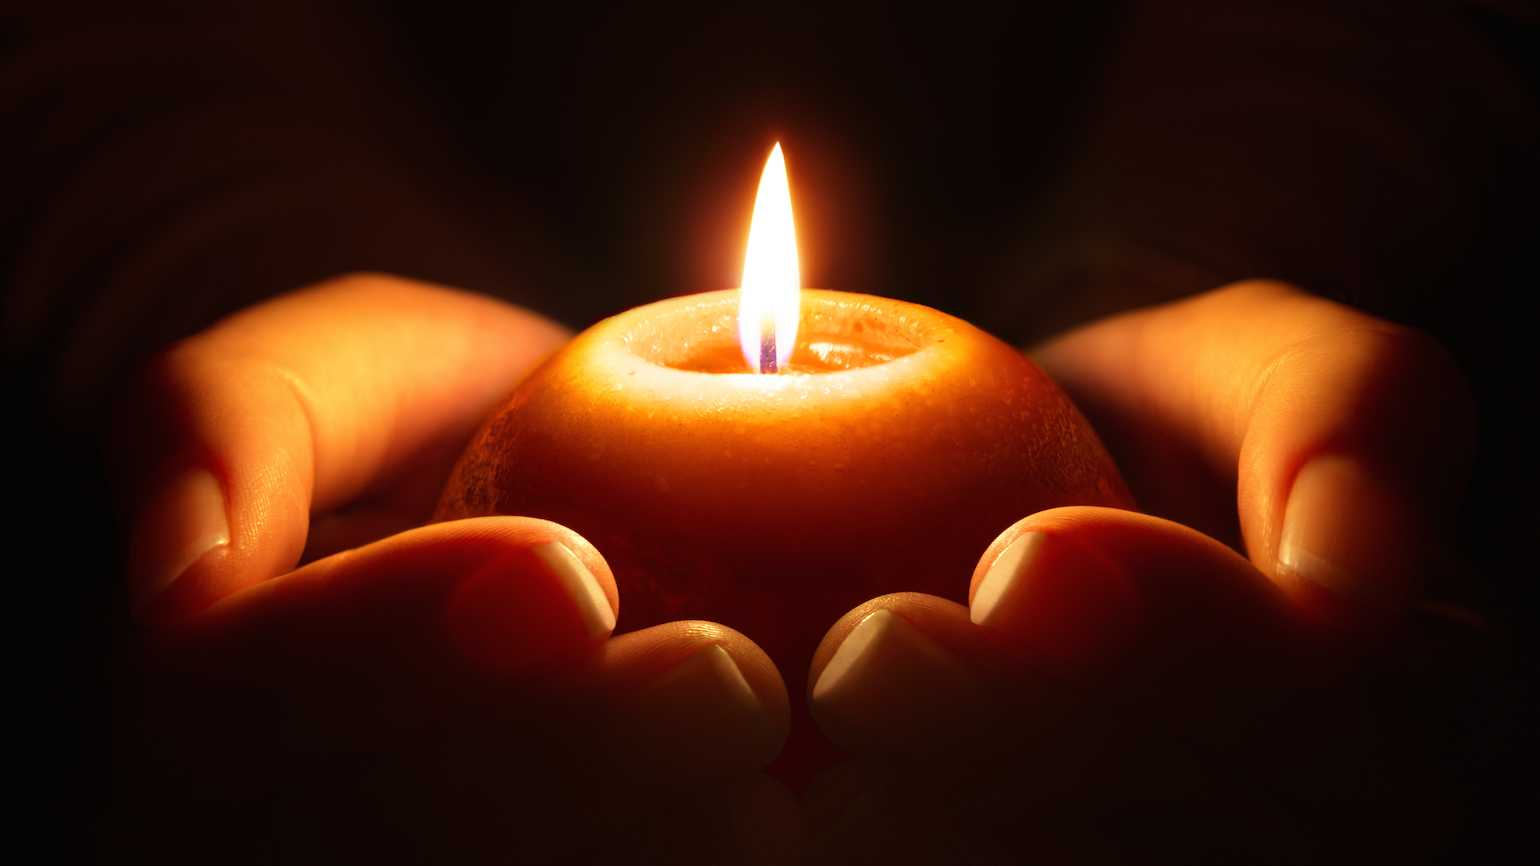 7 prayers against the darkness